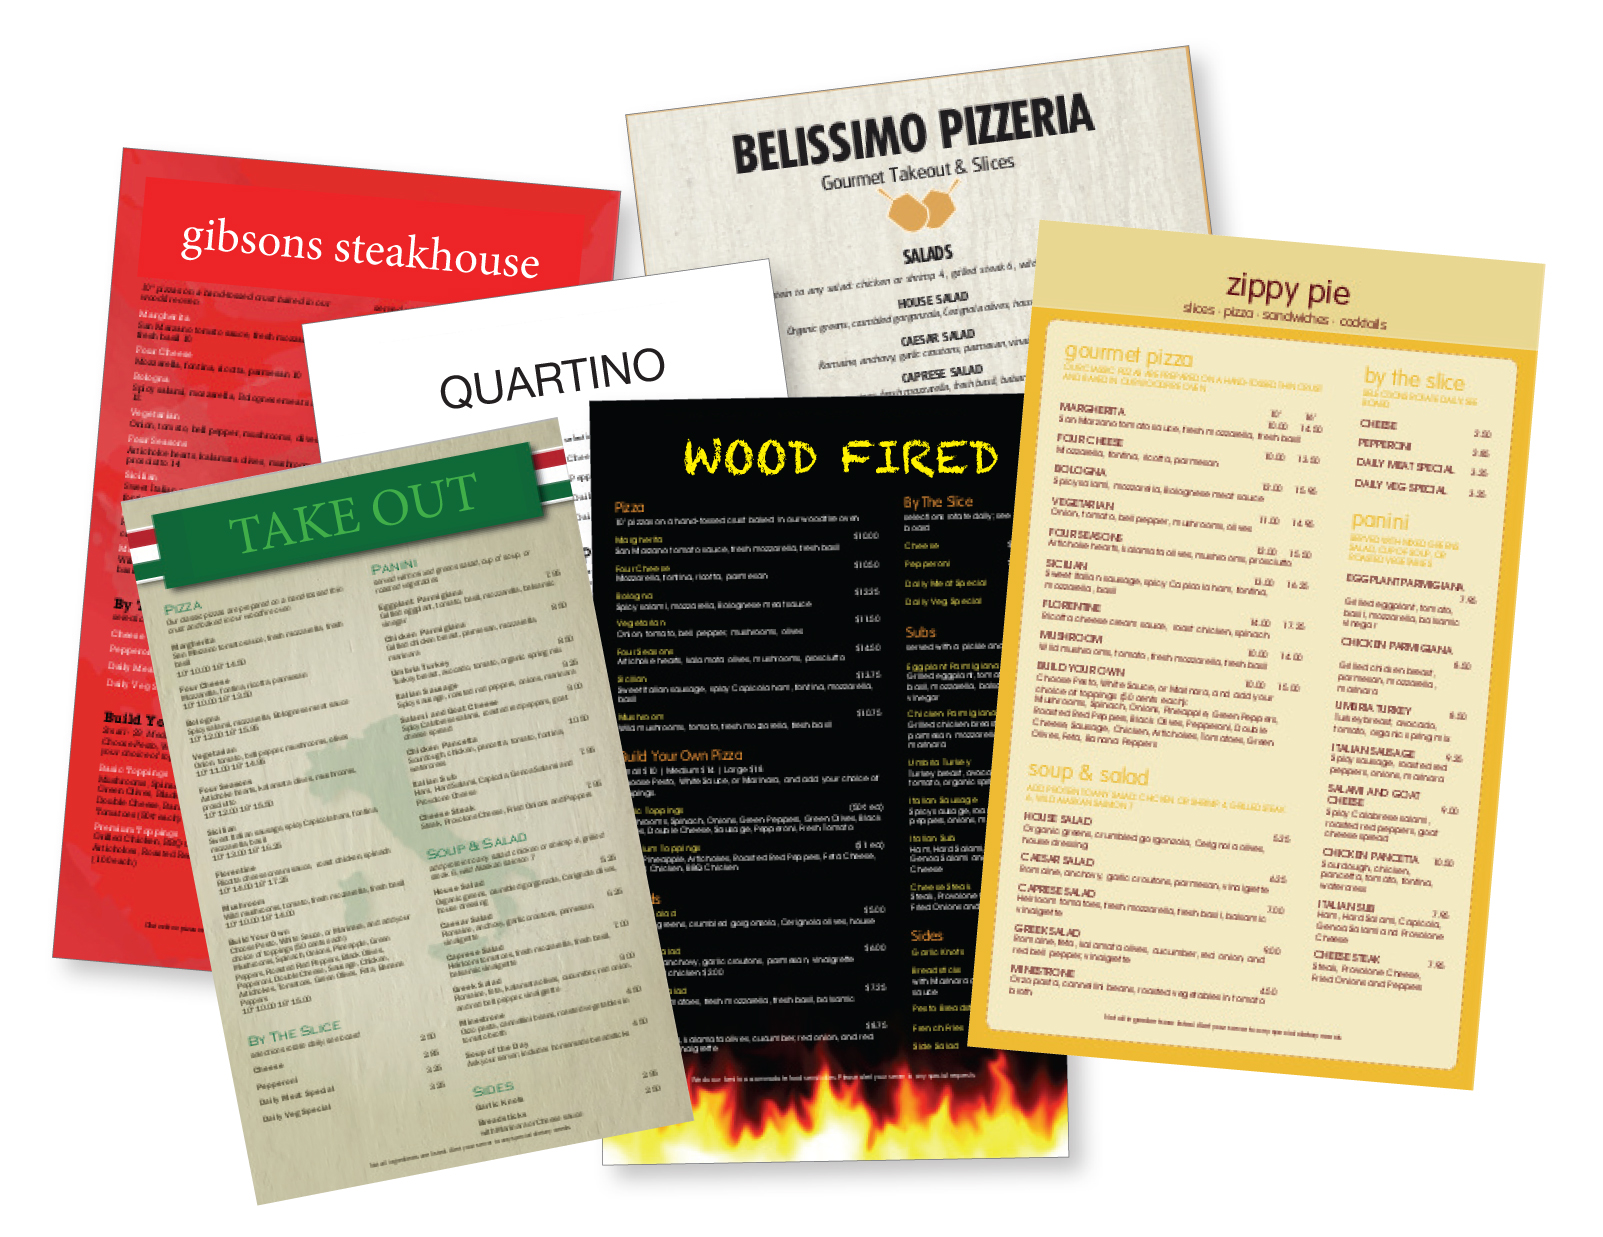 Food Menus printed on plastic in the Los Angeles area